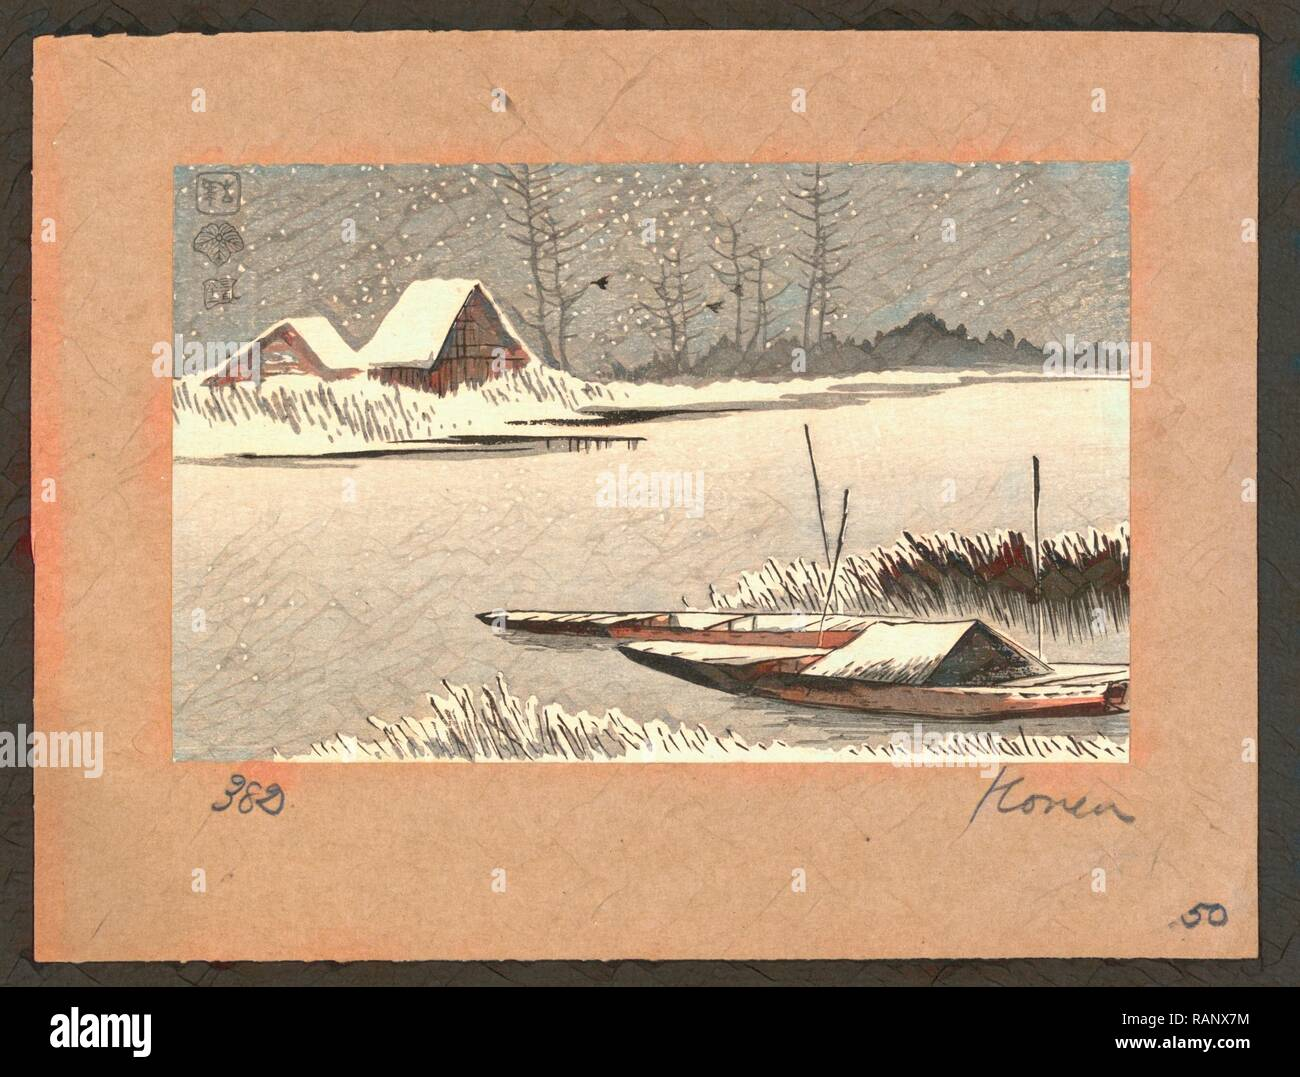 Yuki No Watashiba, Ferryboats in Snow. [Between 1900 and 1920], 1 Print: Woodcut, Color, 9.8 X 15.6, Print Shows Two reimagined - Stock Image